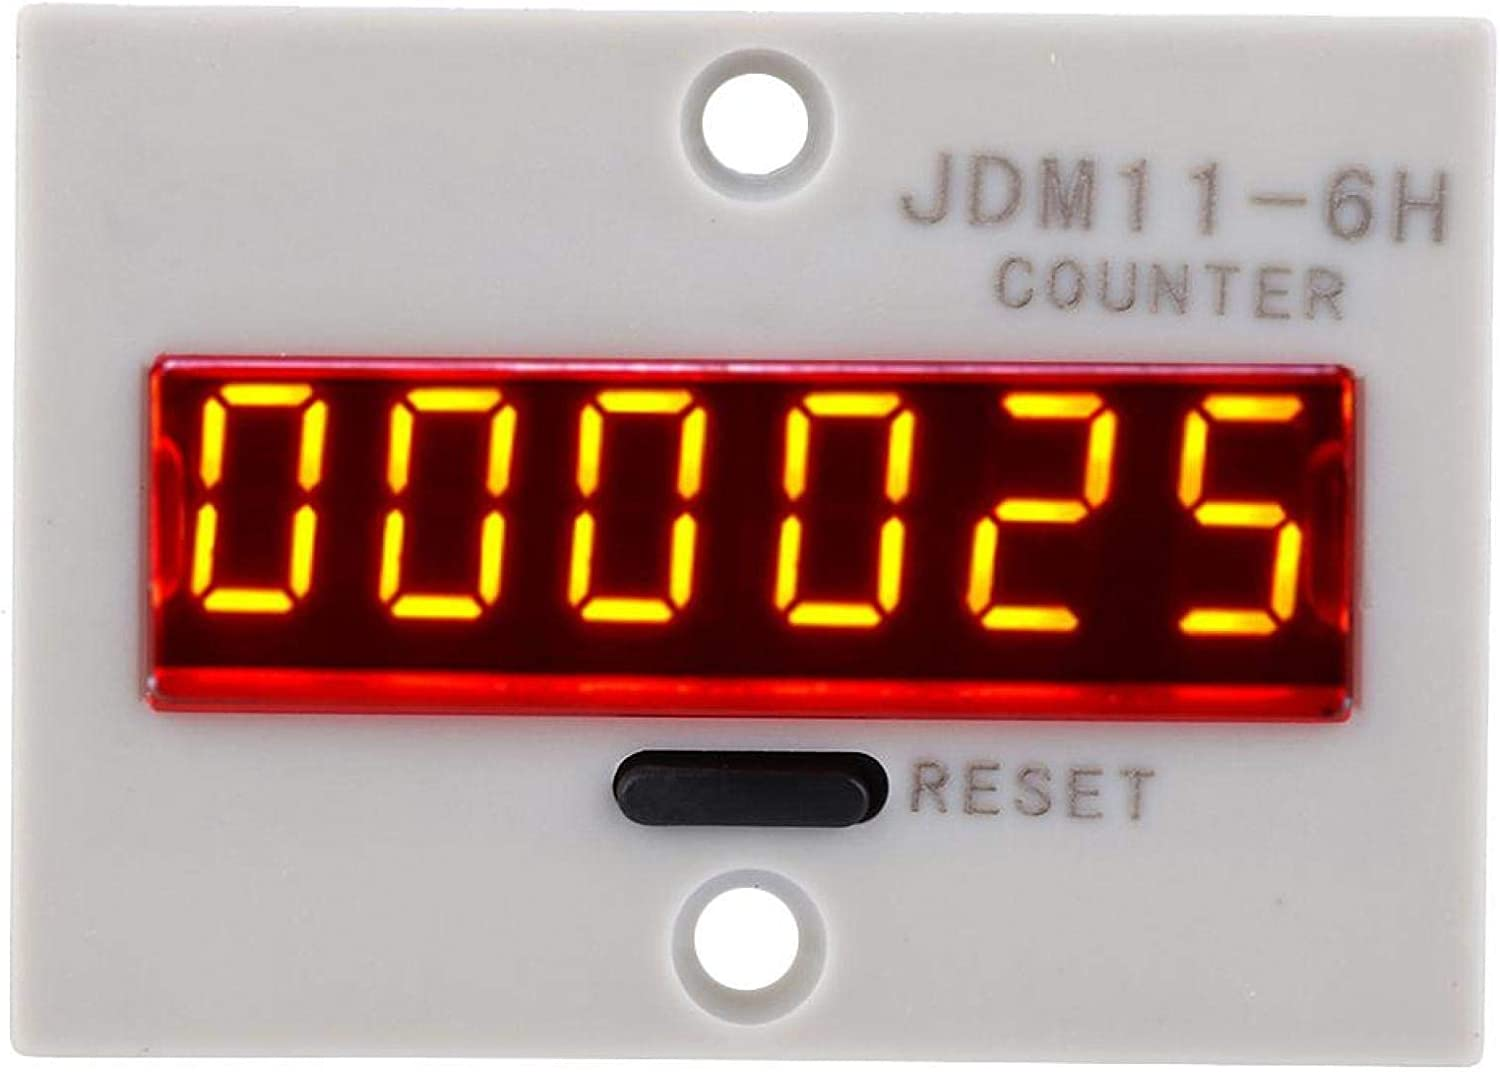 JDM11-6H No Voltage Memphis Mall Counter Relay 6 Digits Elect Ranking TOP9